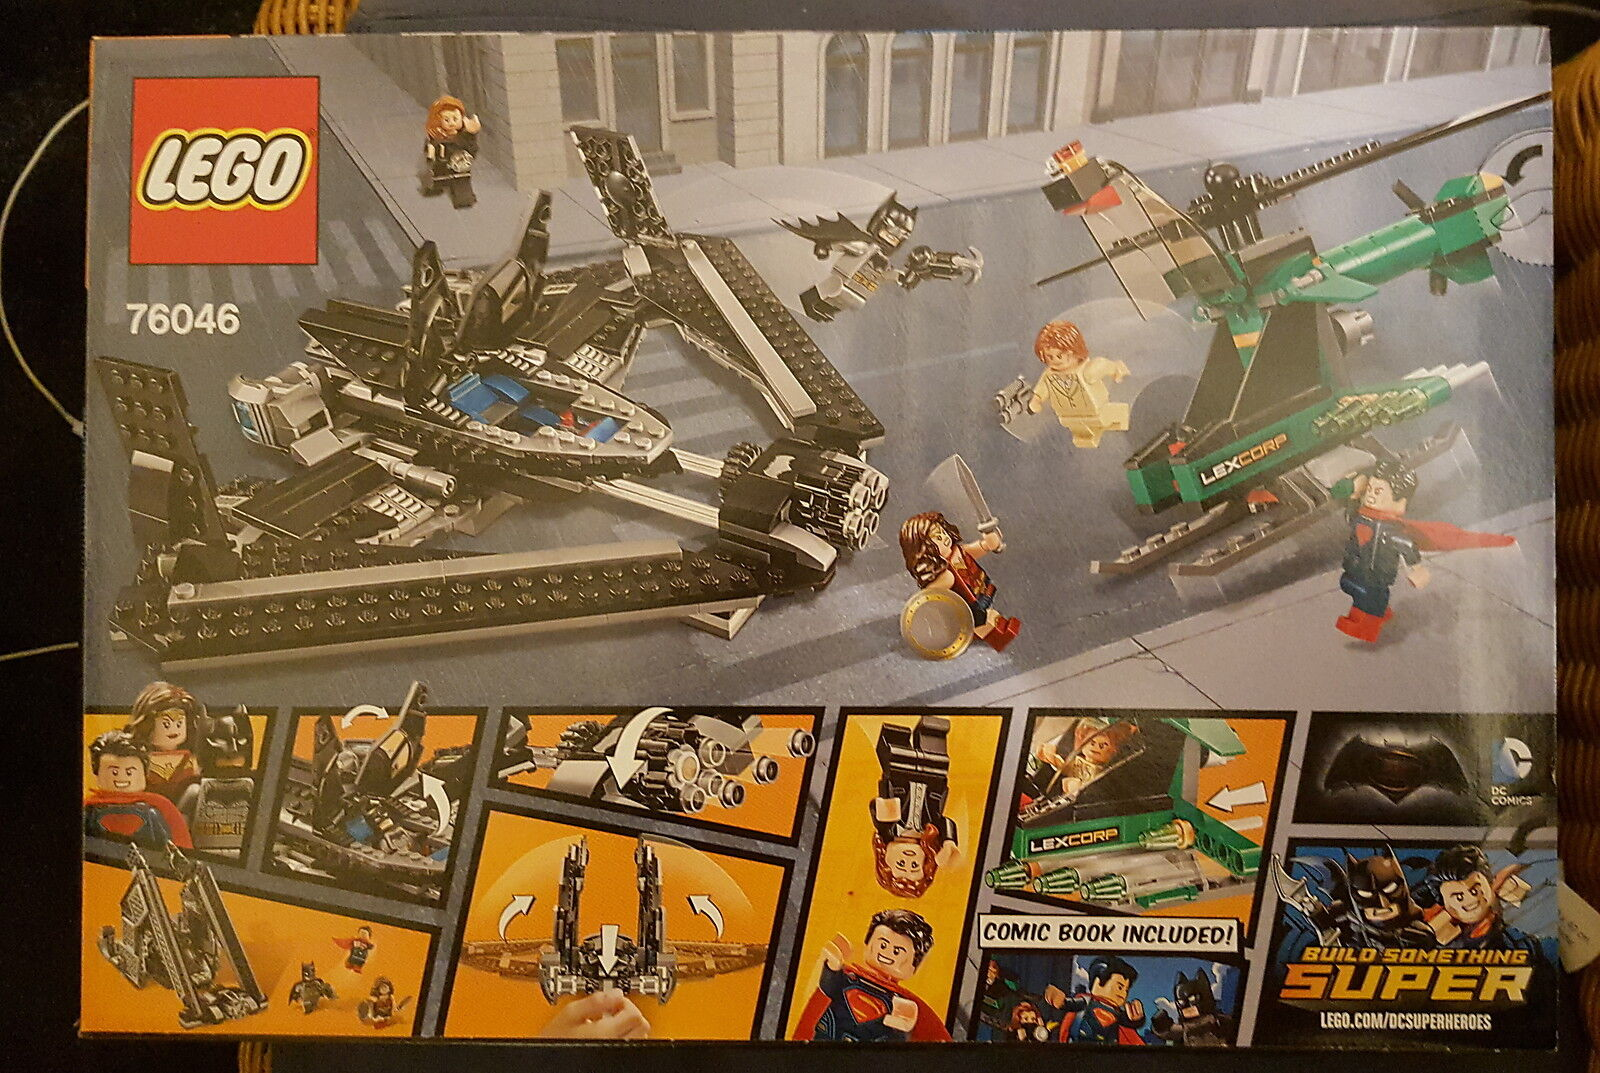 LEGO DC SUPER HEROES 76046 - HEROES OF JUSTICE SKY HIGH BATTLE - NEW & SEALED